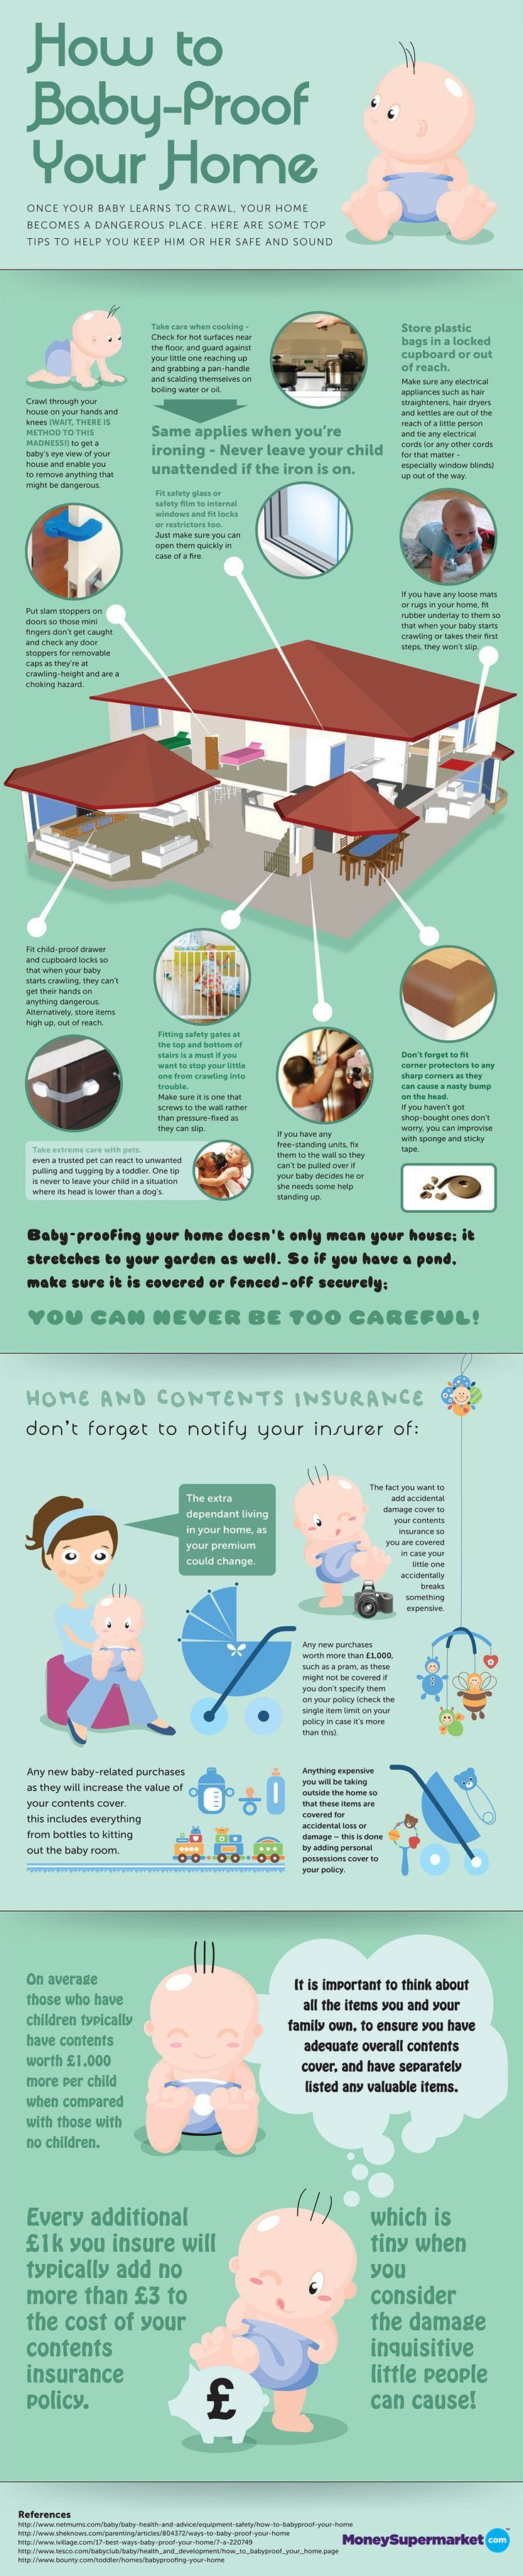 Best Home Safety Images On Pinterest Safety Security Tips